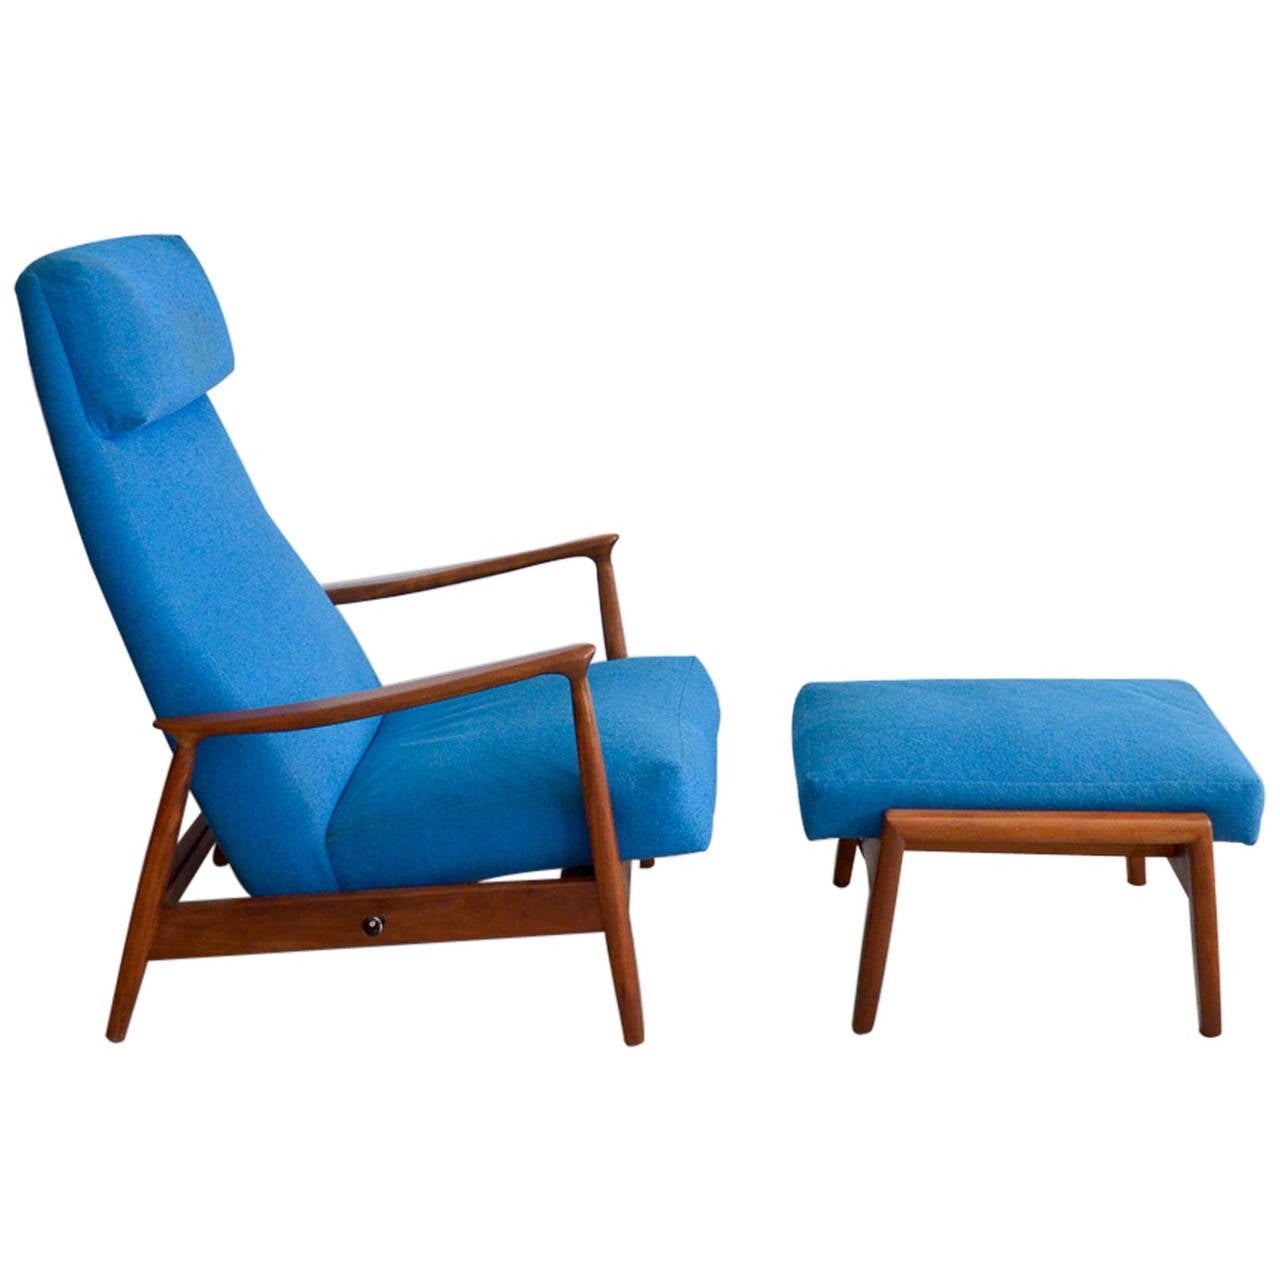 Milo Baughman Walnut Reclining Lounge Chair with Ottoman at 1stdibs